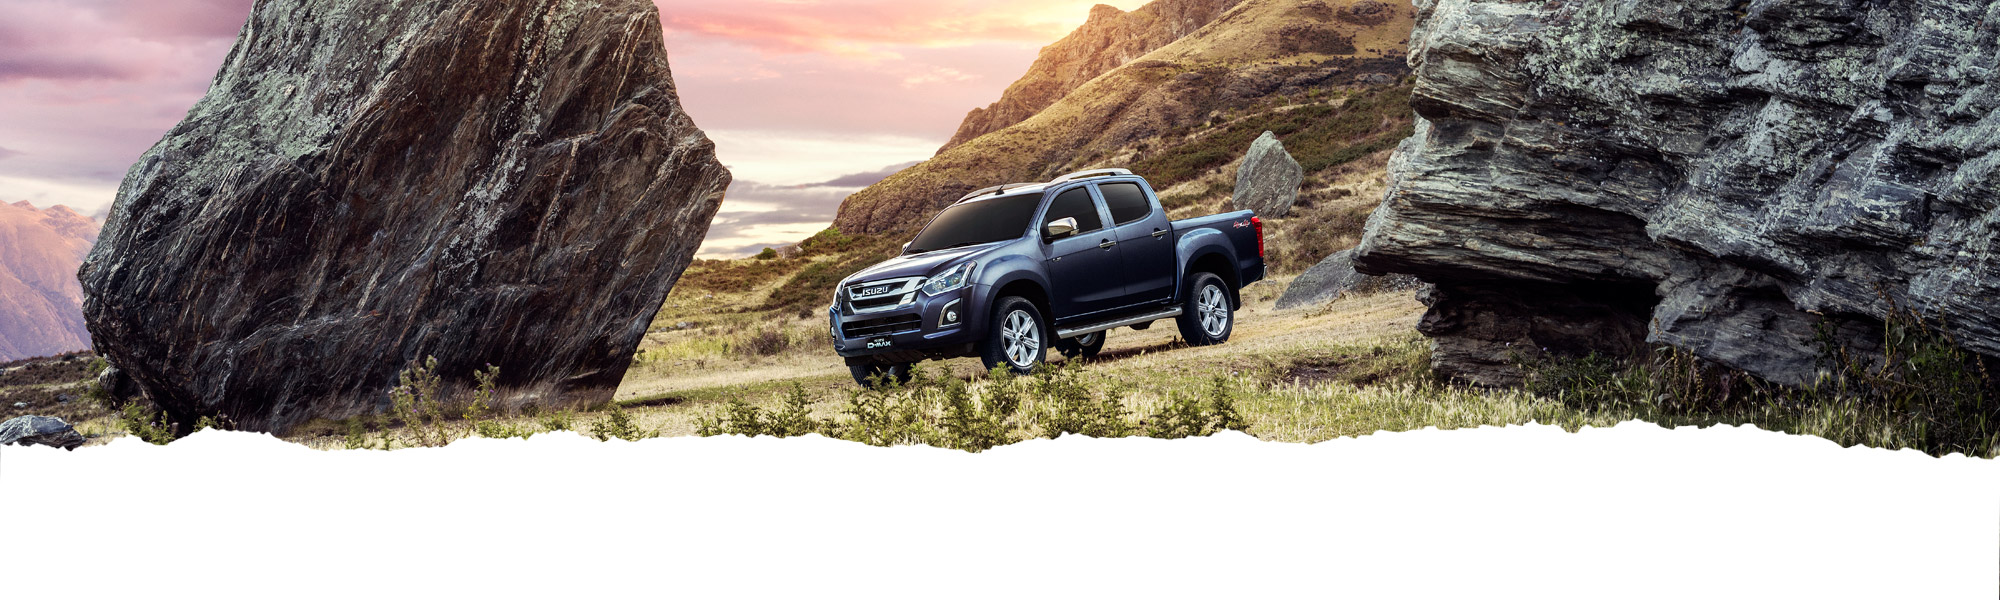 ISUZU continues to build a reputation for diesel engines since developing Japan's first air-cooled automotive diesel engine in 1936.